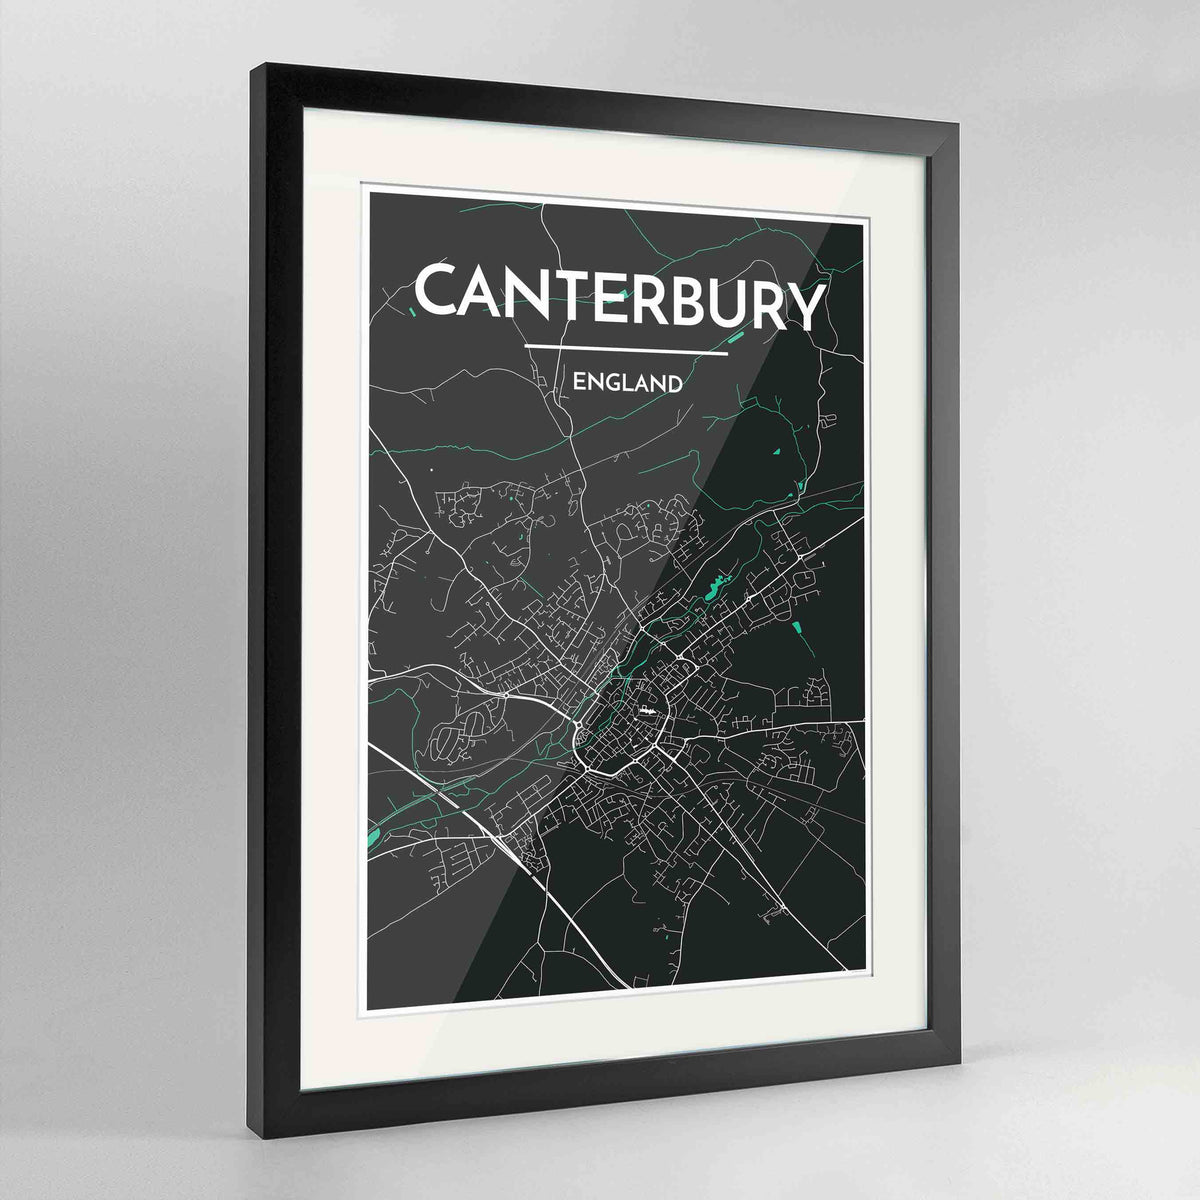 "Framed Canterbury Map Art Print 24x36"" Contemporary Black frame Point Two Design Group"